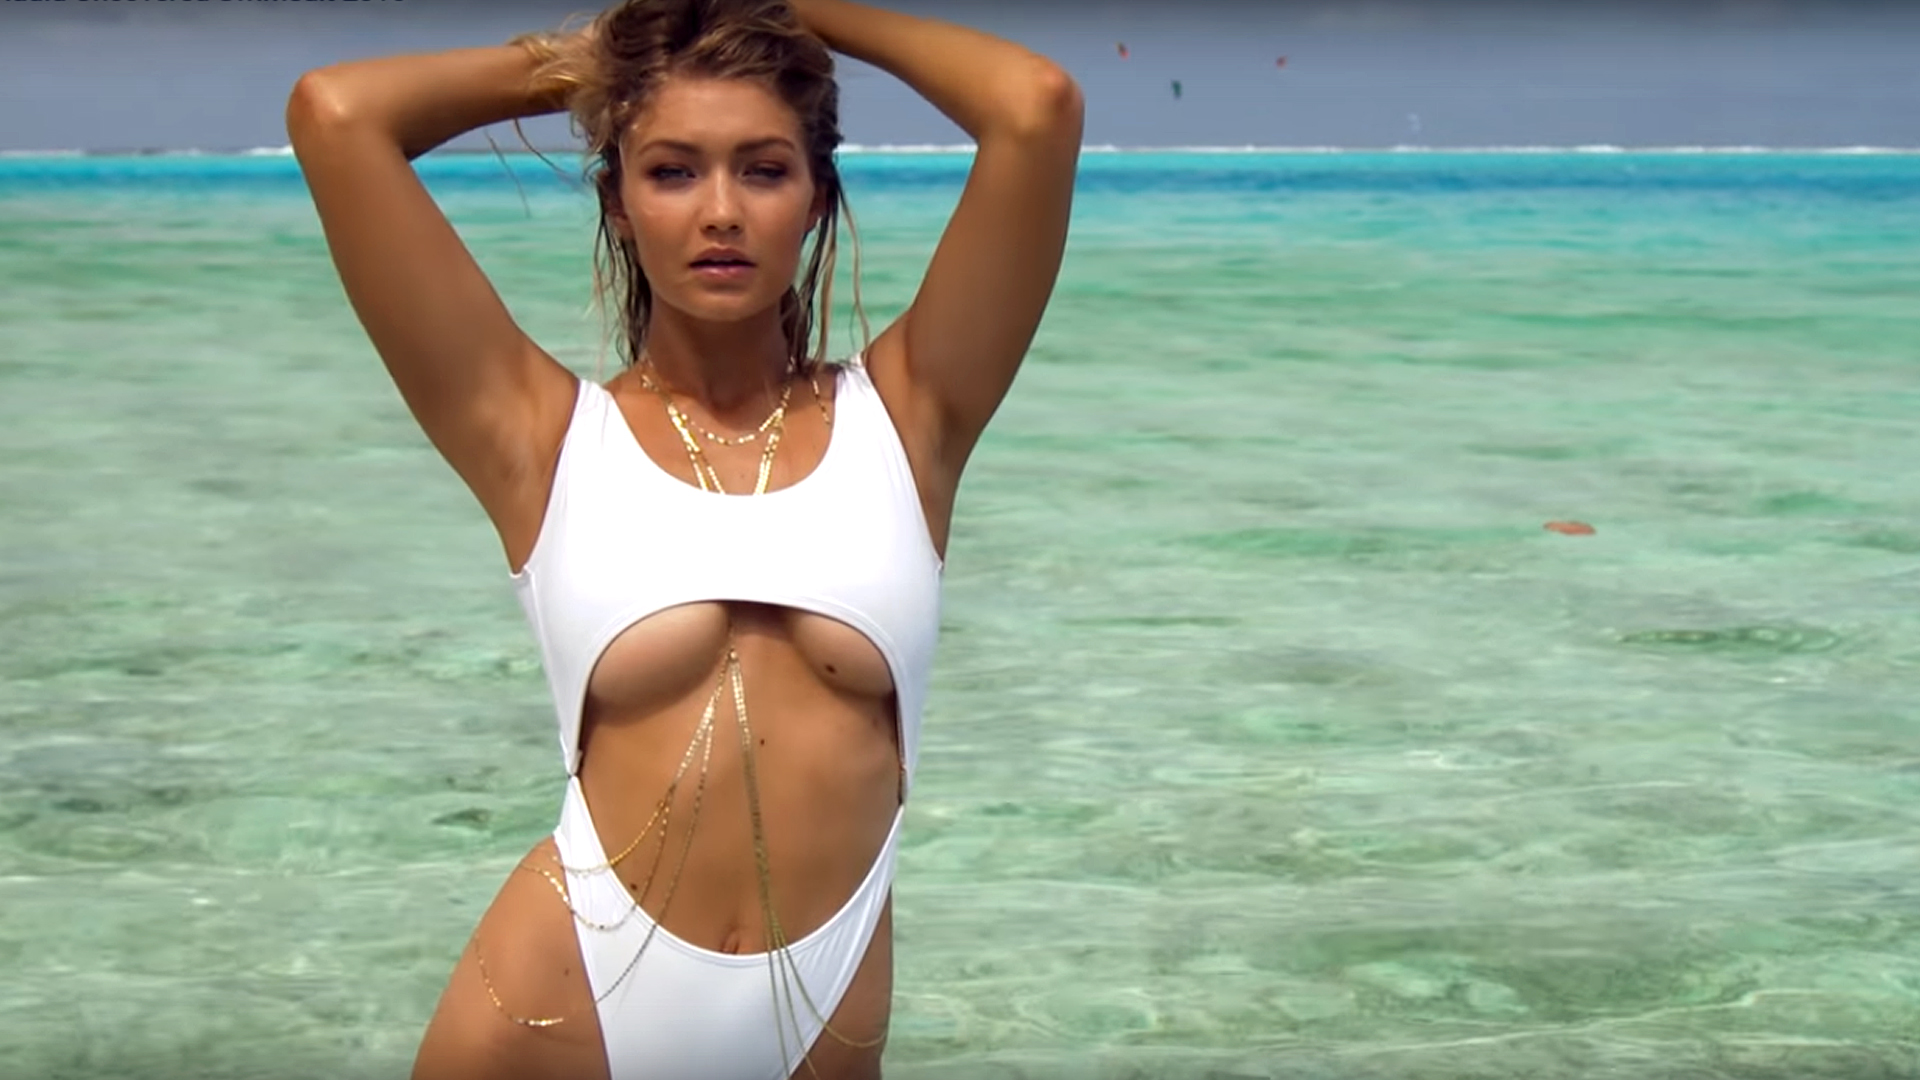 GIGI HADID FOR SPORTS ILLUSTRATED SWIMSUIT ISSUE 2016